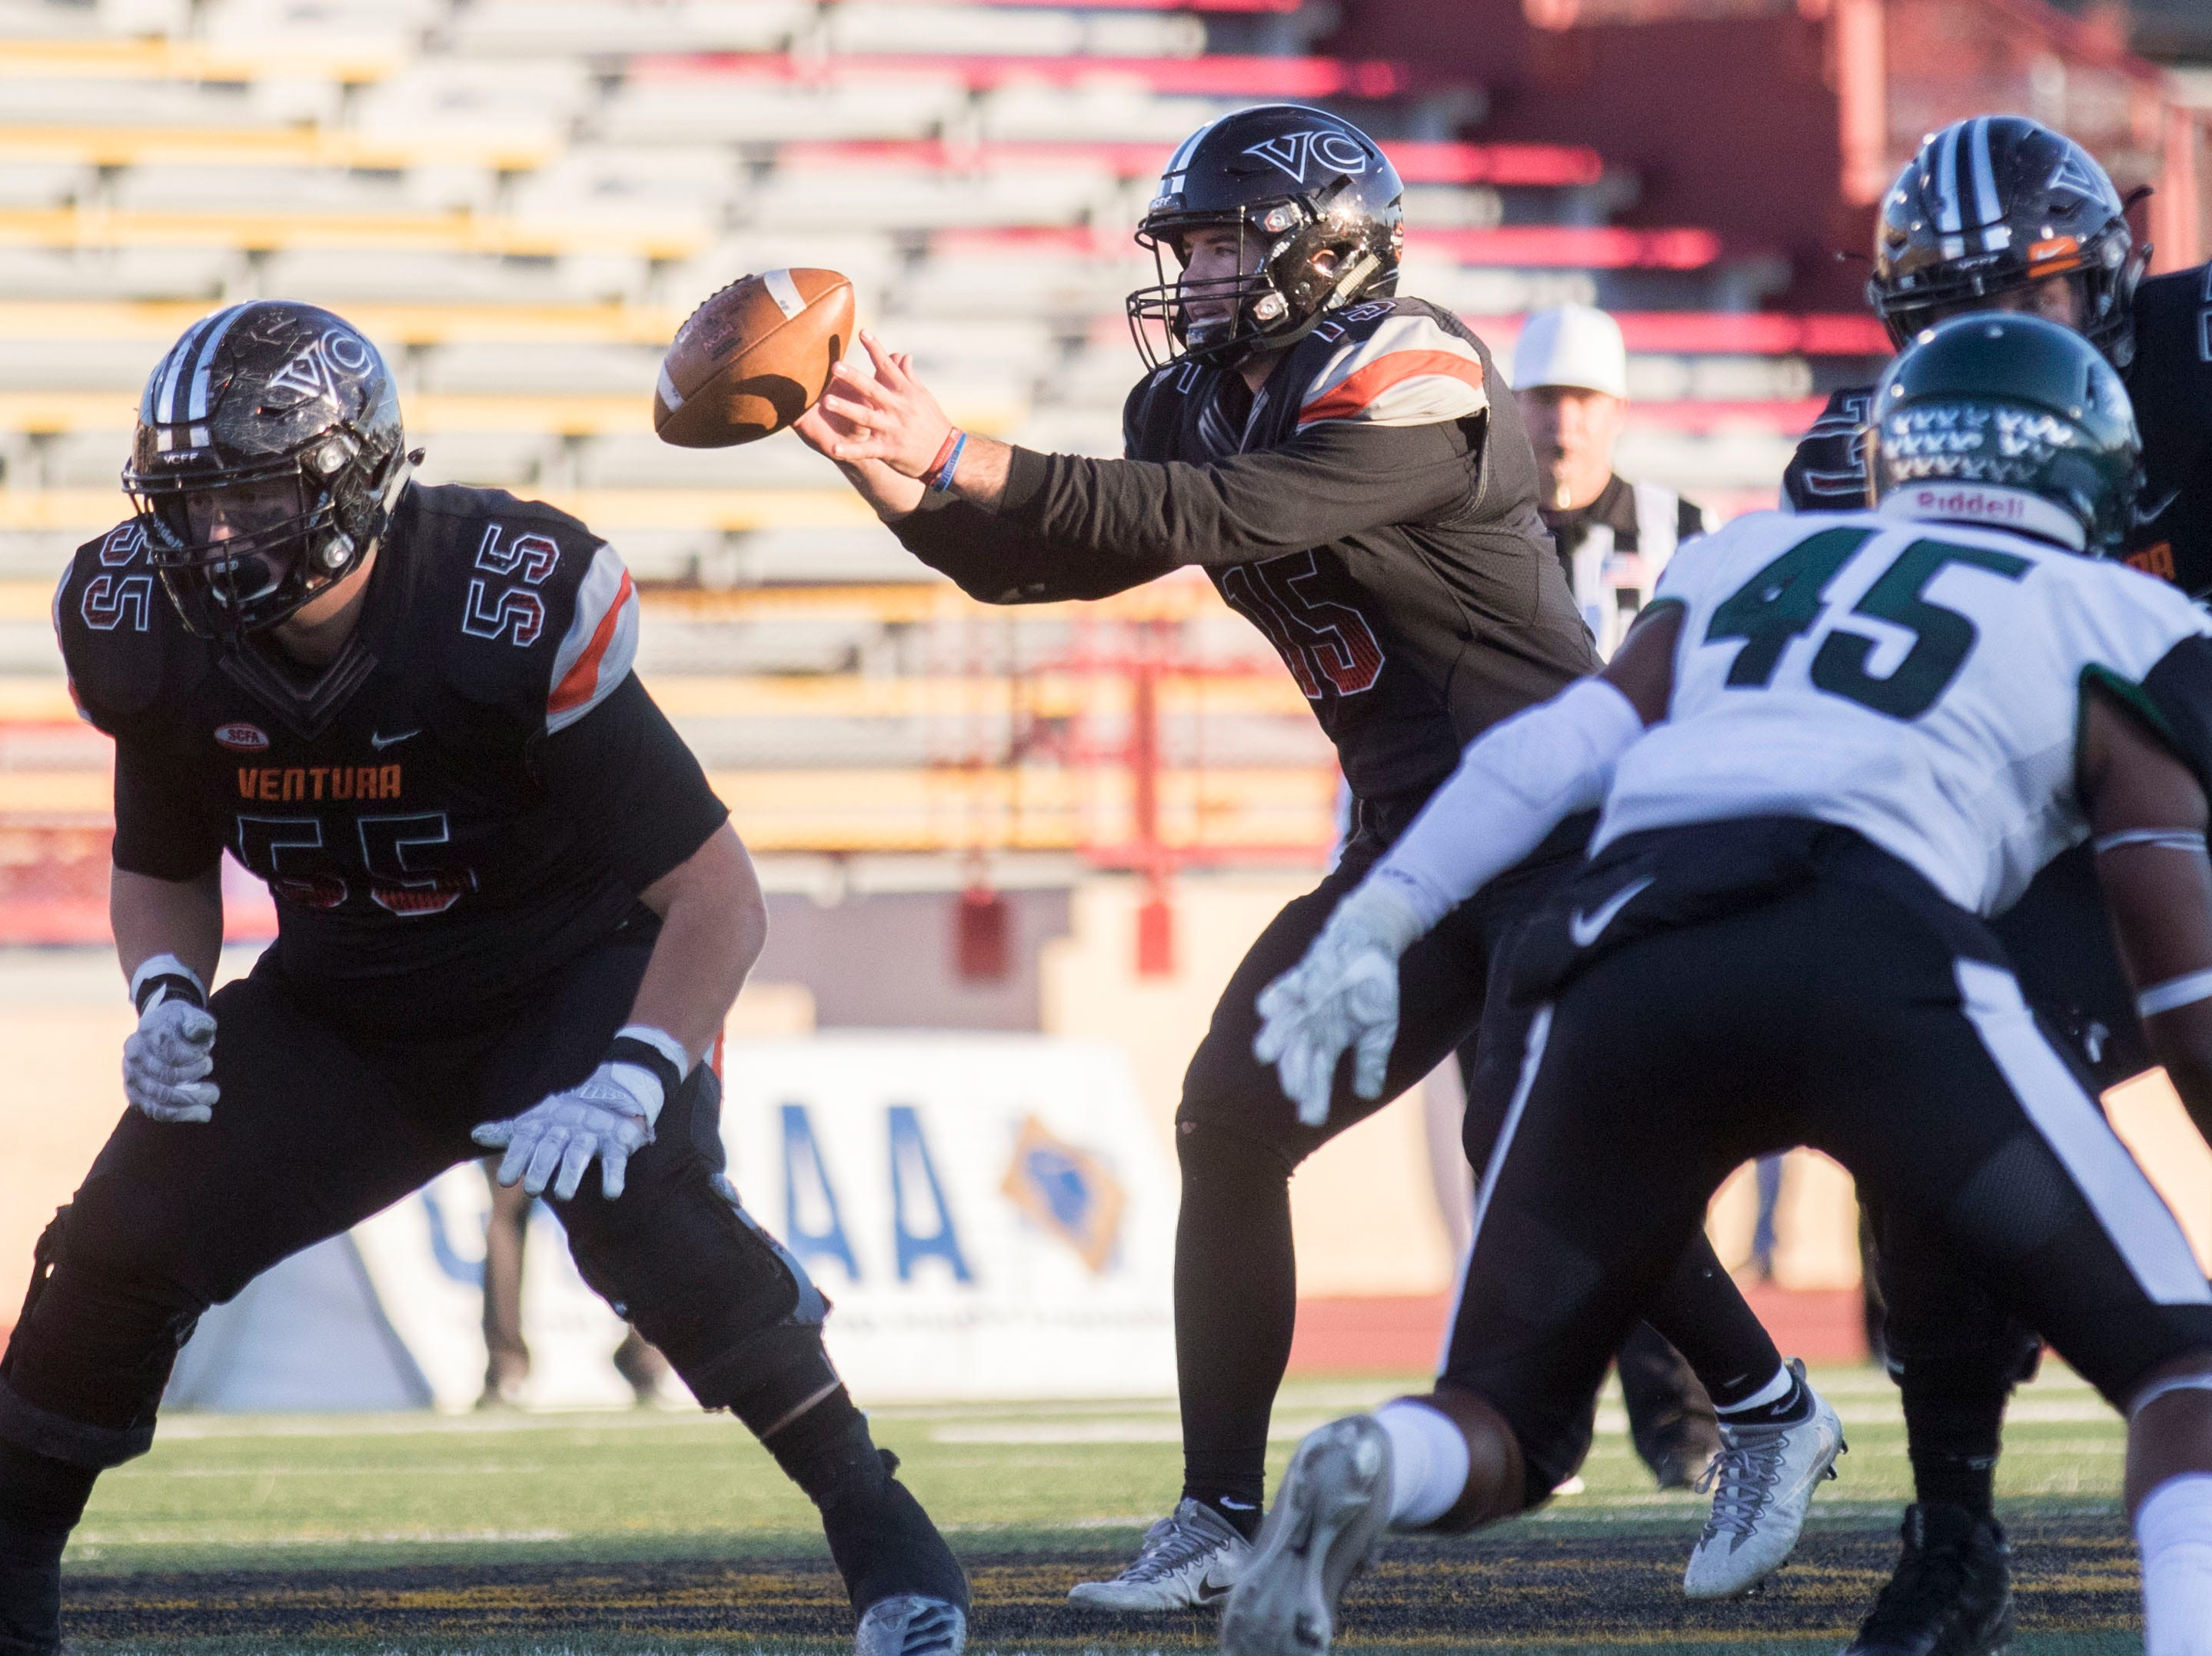 Protected by offensive lineman Tyler Orsini, left, Ventura College quarterback Brock Domann takes a snap during the CCCAA state championship game on Saturday afternoon at Sacramento City's Hughes Stadium. Laney won, 40-35.